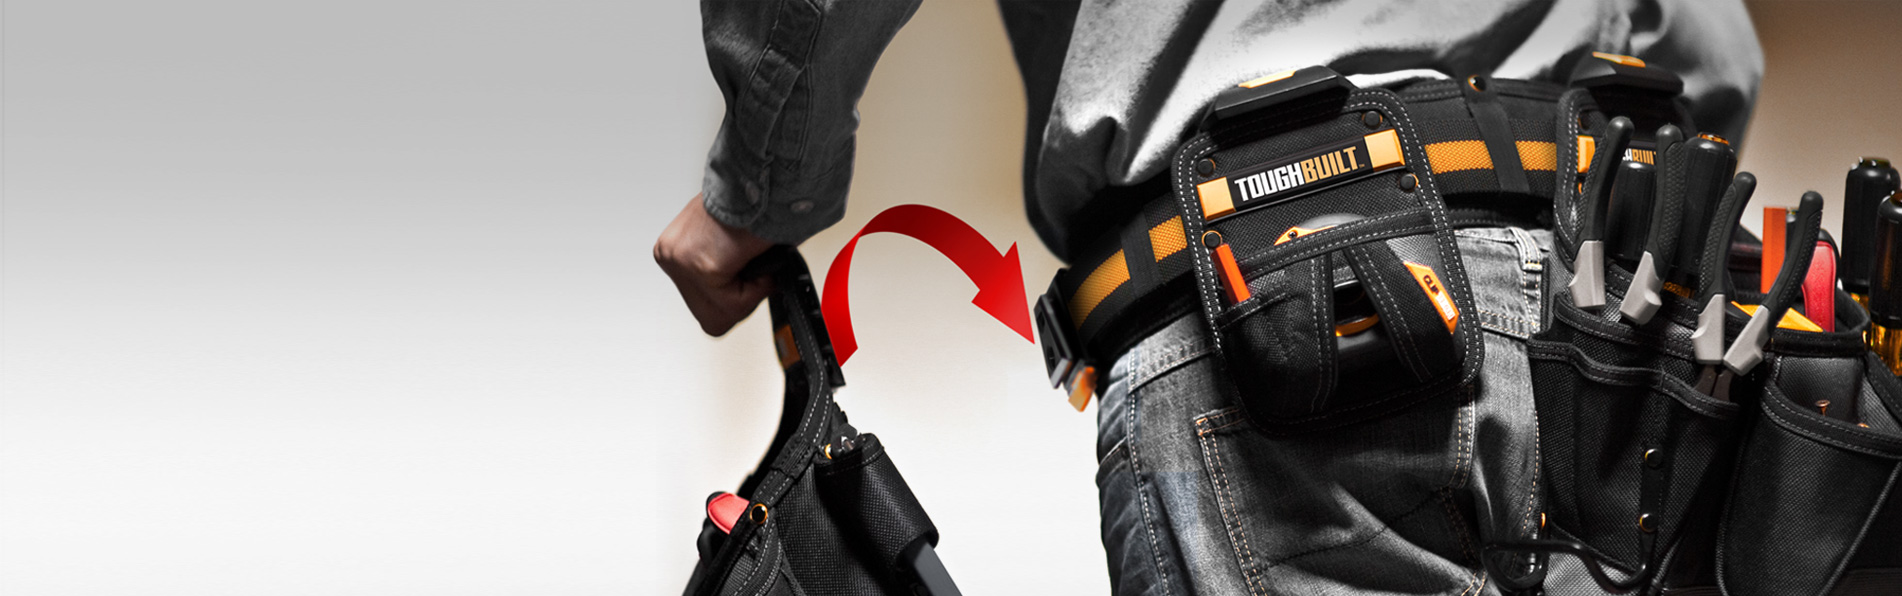 CLIPTECH TOOL BELTS, POUCHES, & BAGS